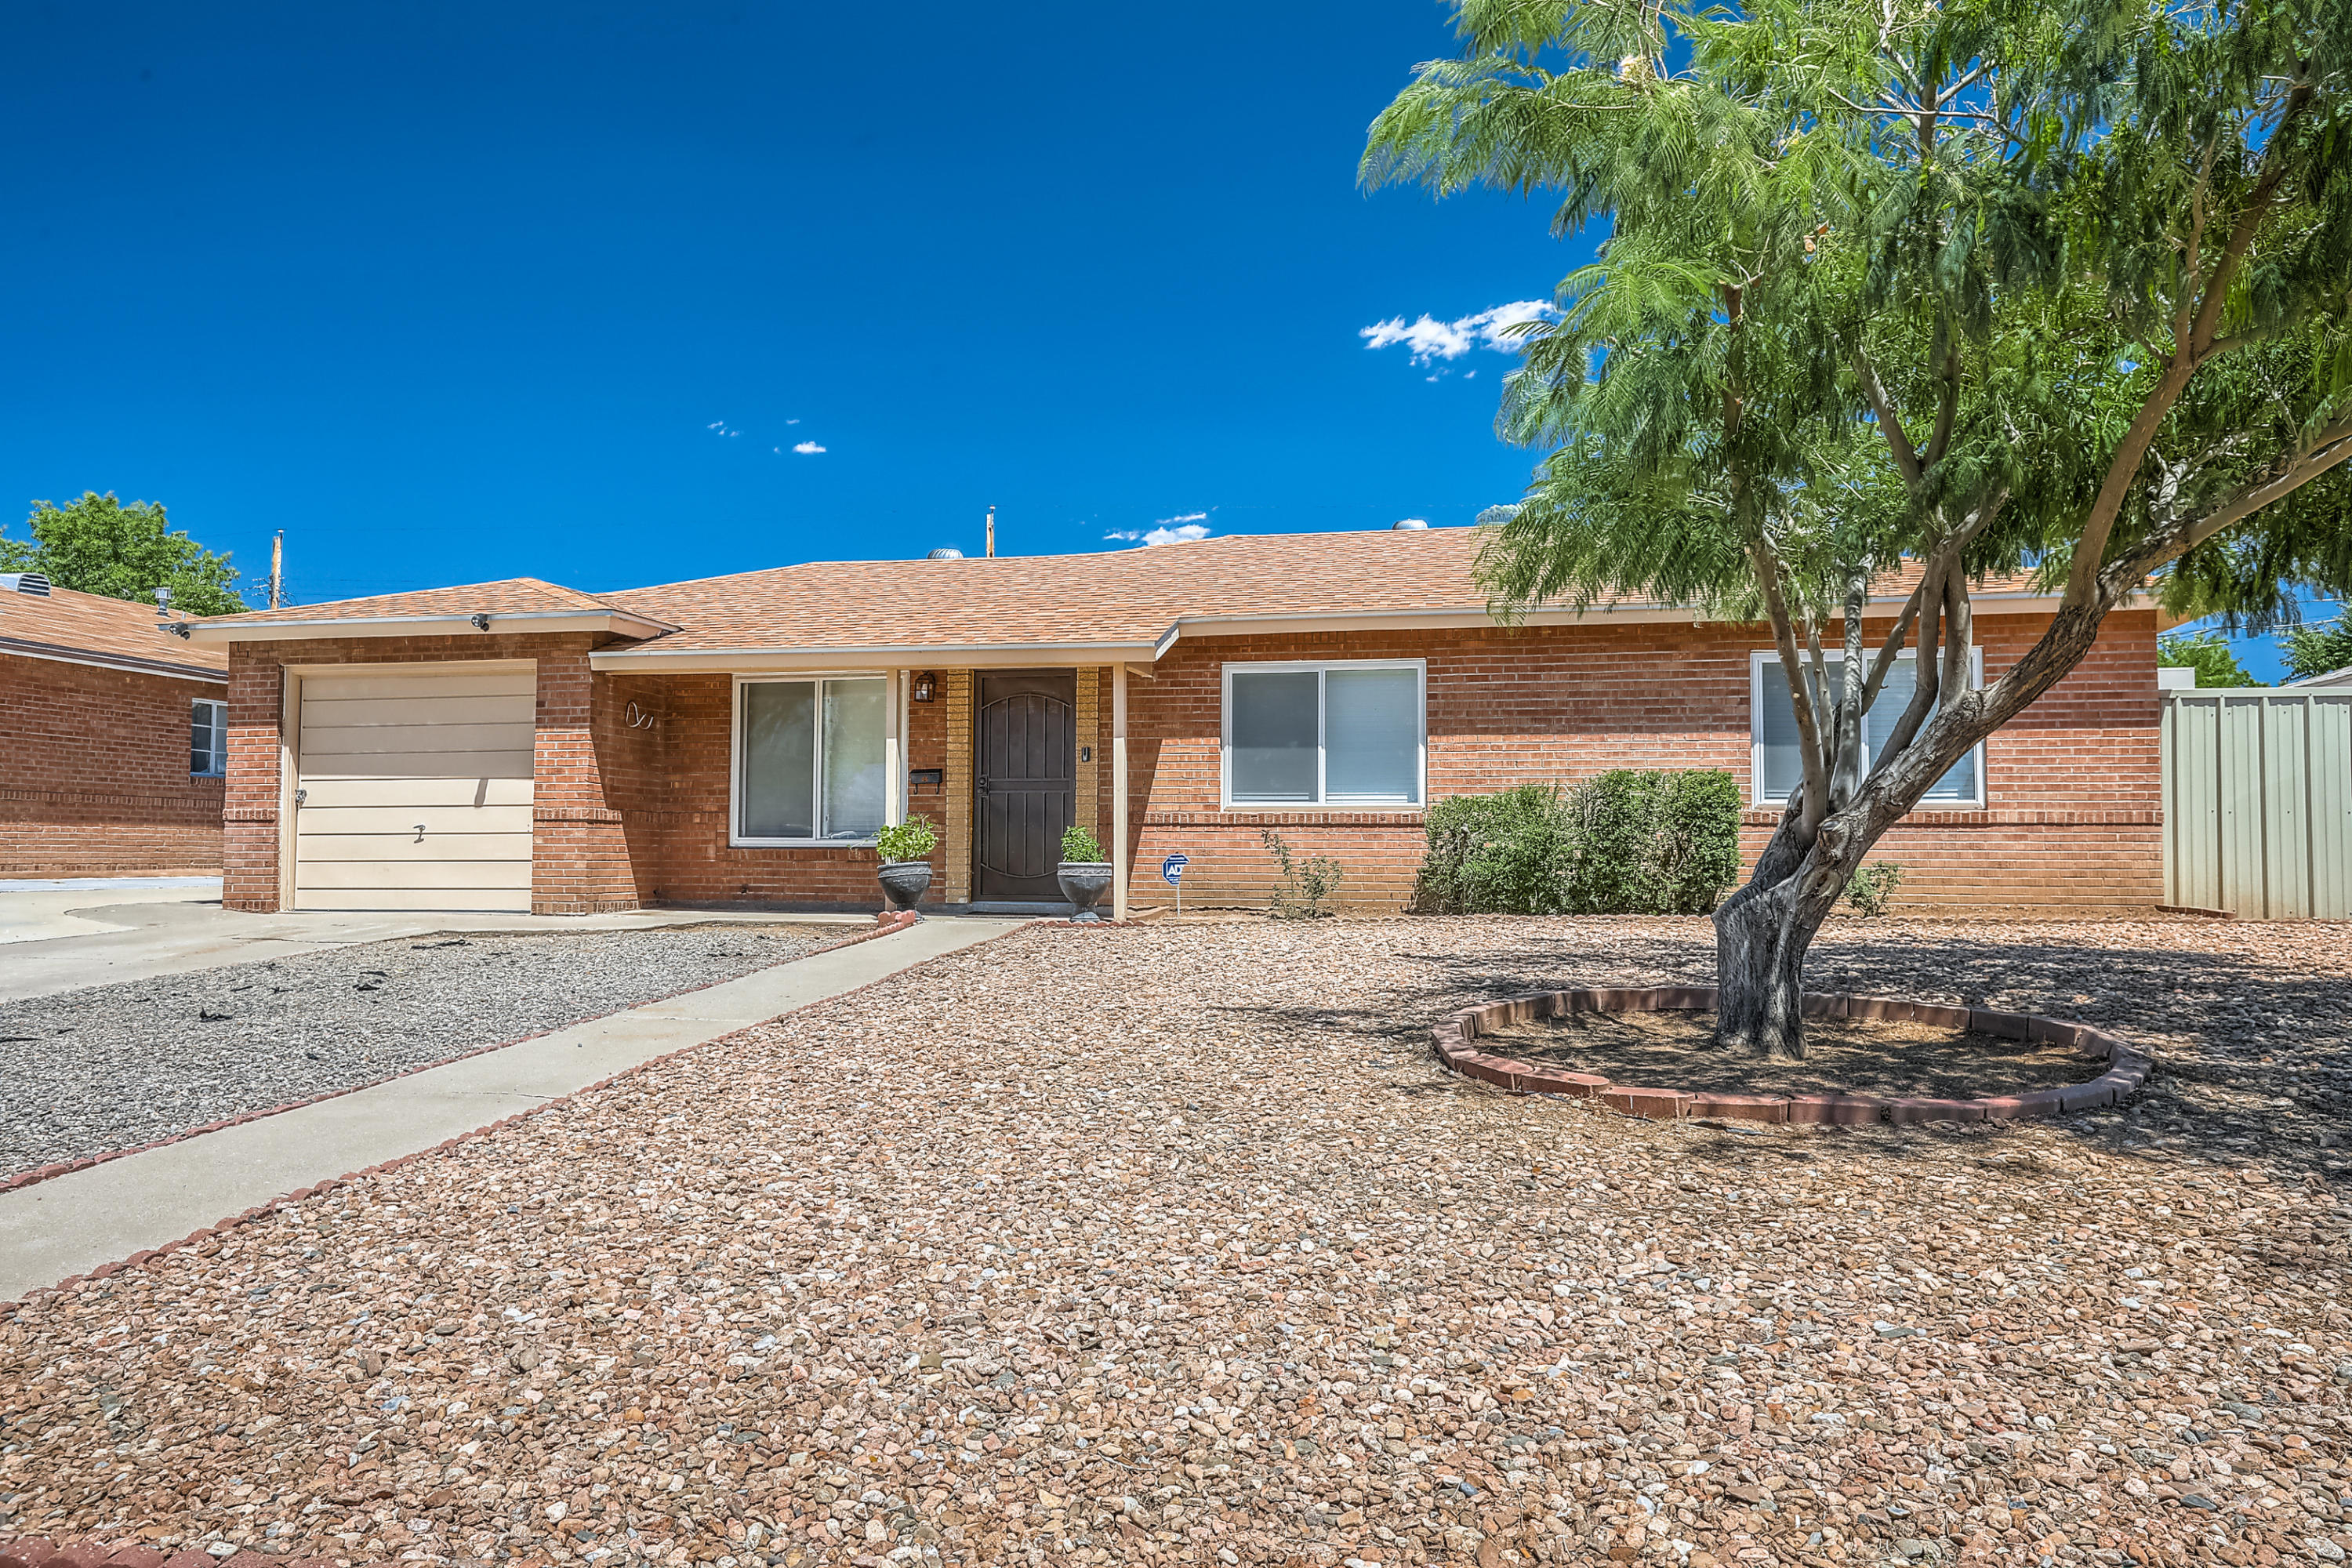 Wonderful Single story home located in the NE Heights with updated kitchen and flooring!. Home also features - 3 bedrooms, 2 baths and large spacious backyard with patio.